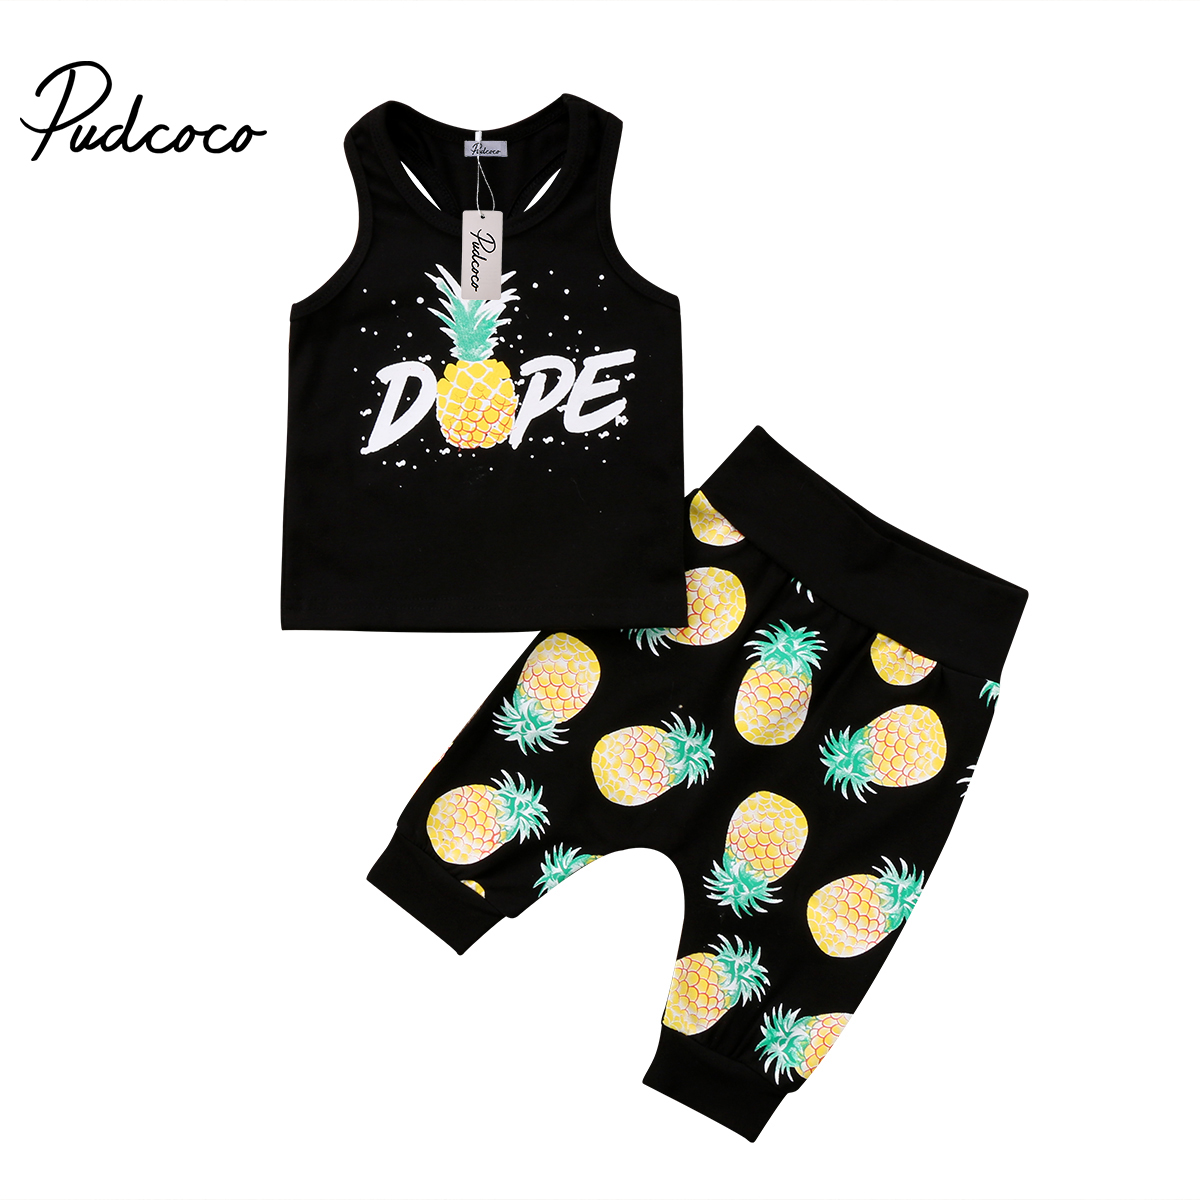 2PC Lovely Kids Baby Boy Clothes Cotton Sleeveless O-Neck Pineapple Vest +Pants Outfits Set 6-24Months Helen115